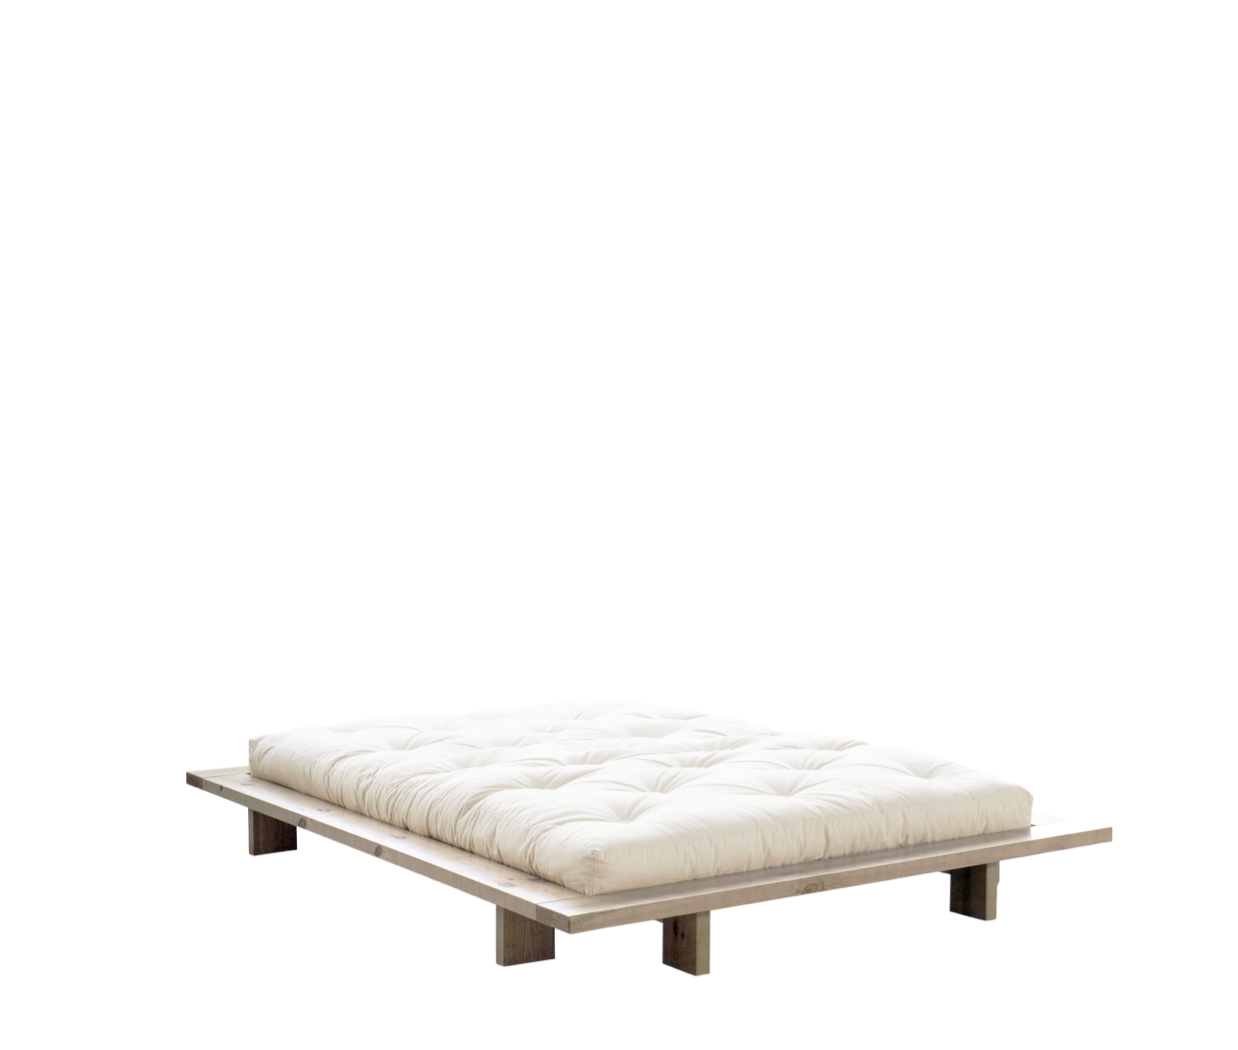 Karup Design Japan Bed 160x200 Sengeramme Natur Stel Karup Design Designdelicatessen Webshop Aps